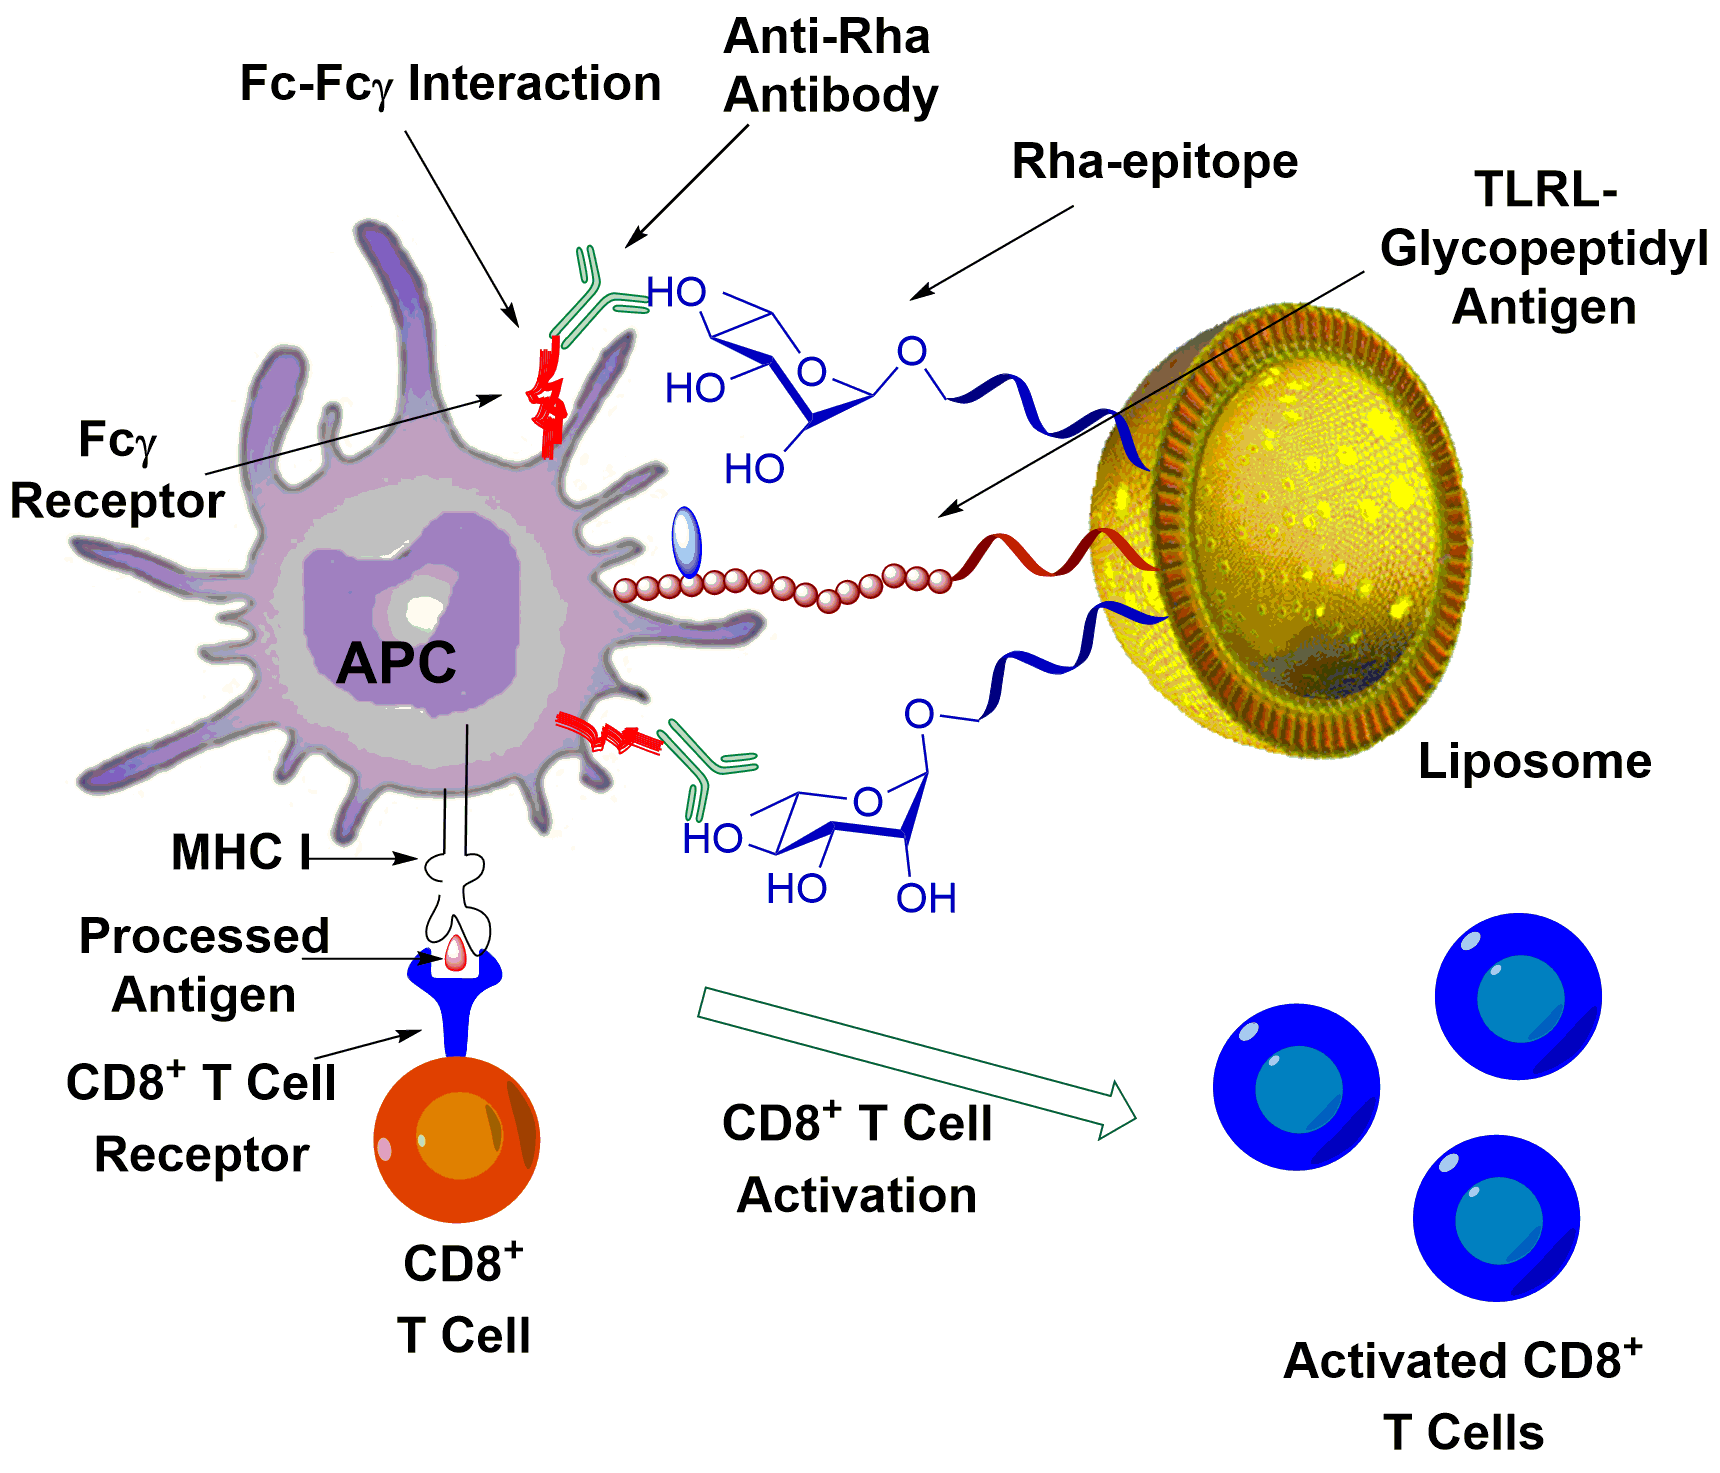 Figure 2.  A liposomal immunotherapeutic which uses Antibody Recruiting Molecules (ARMs) moieties to enhance activity.